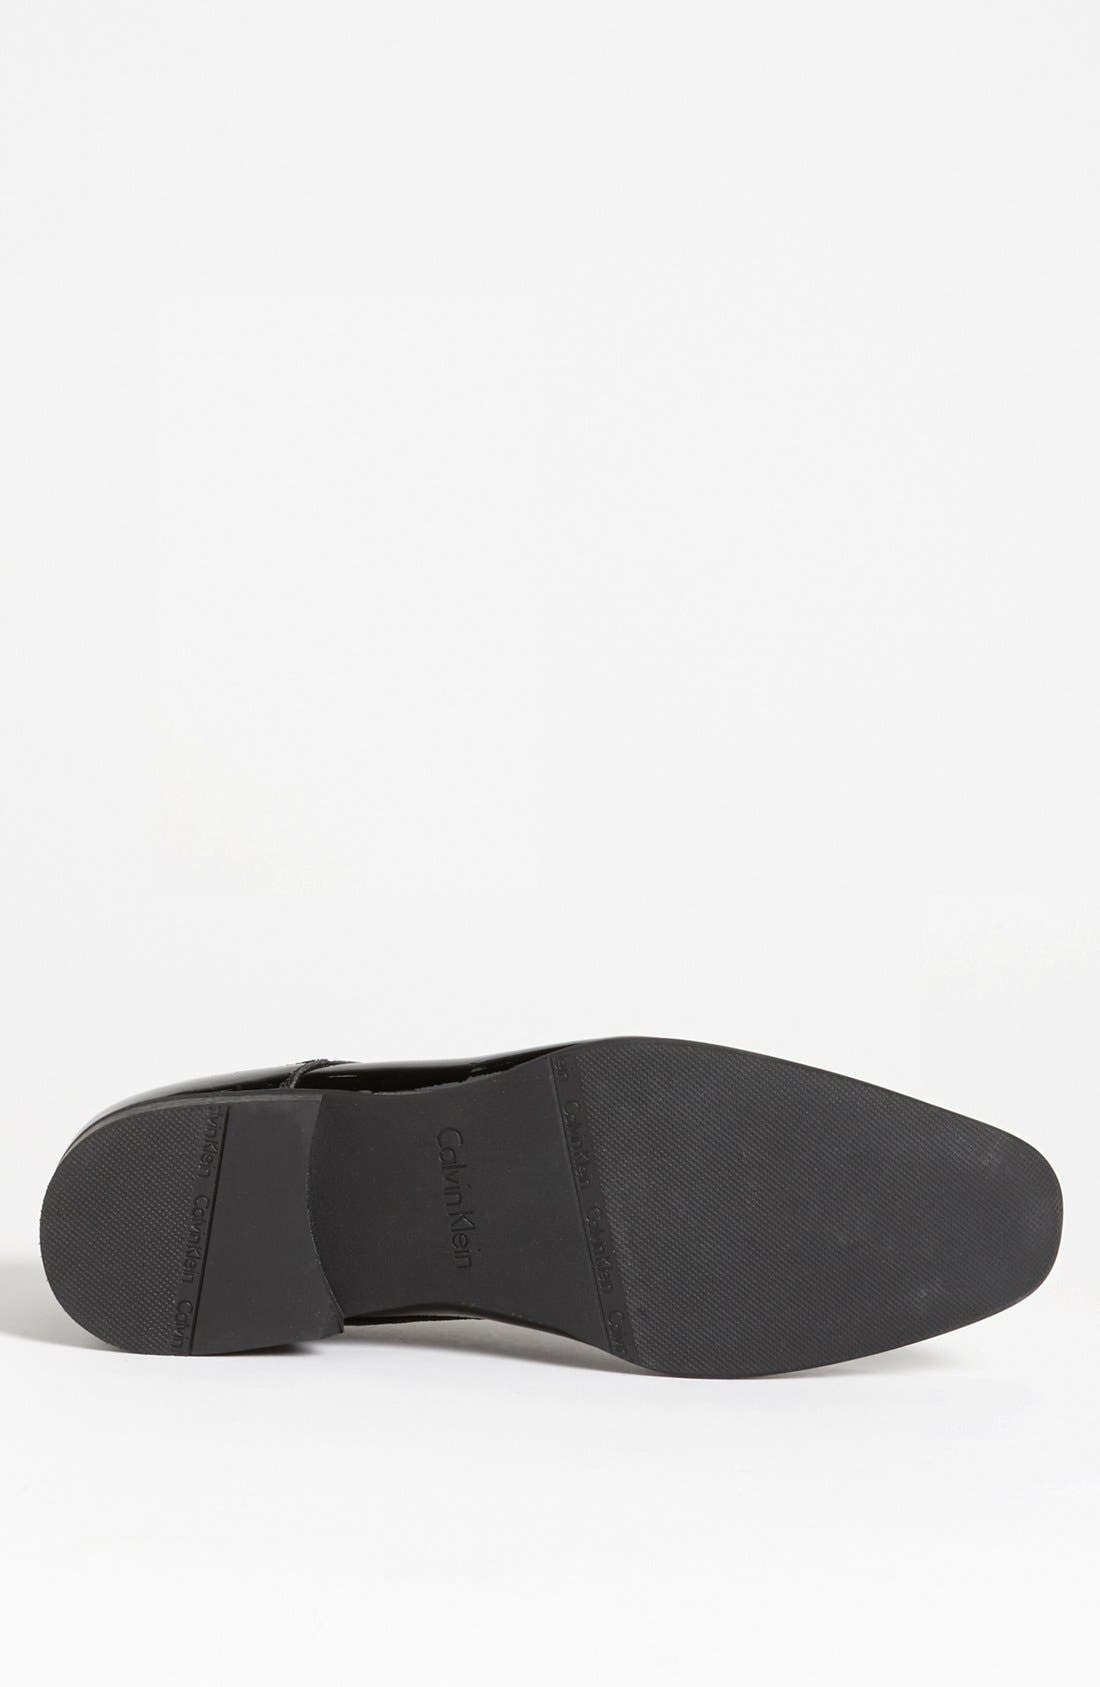 CALVIN KLEIN, 'Brodie' Plain Toe Derby, Alternate thumbnail 4, color, BLACK PATENT